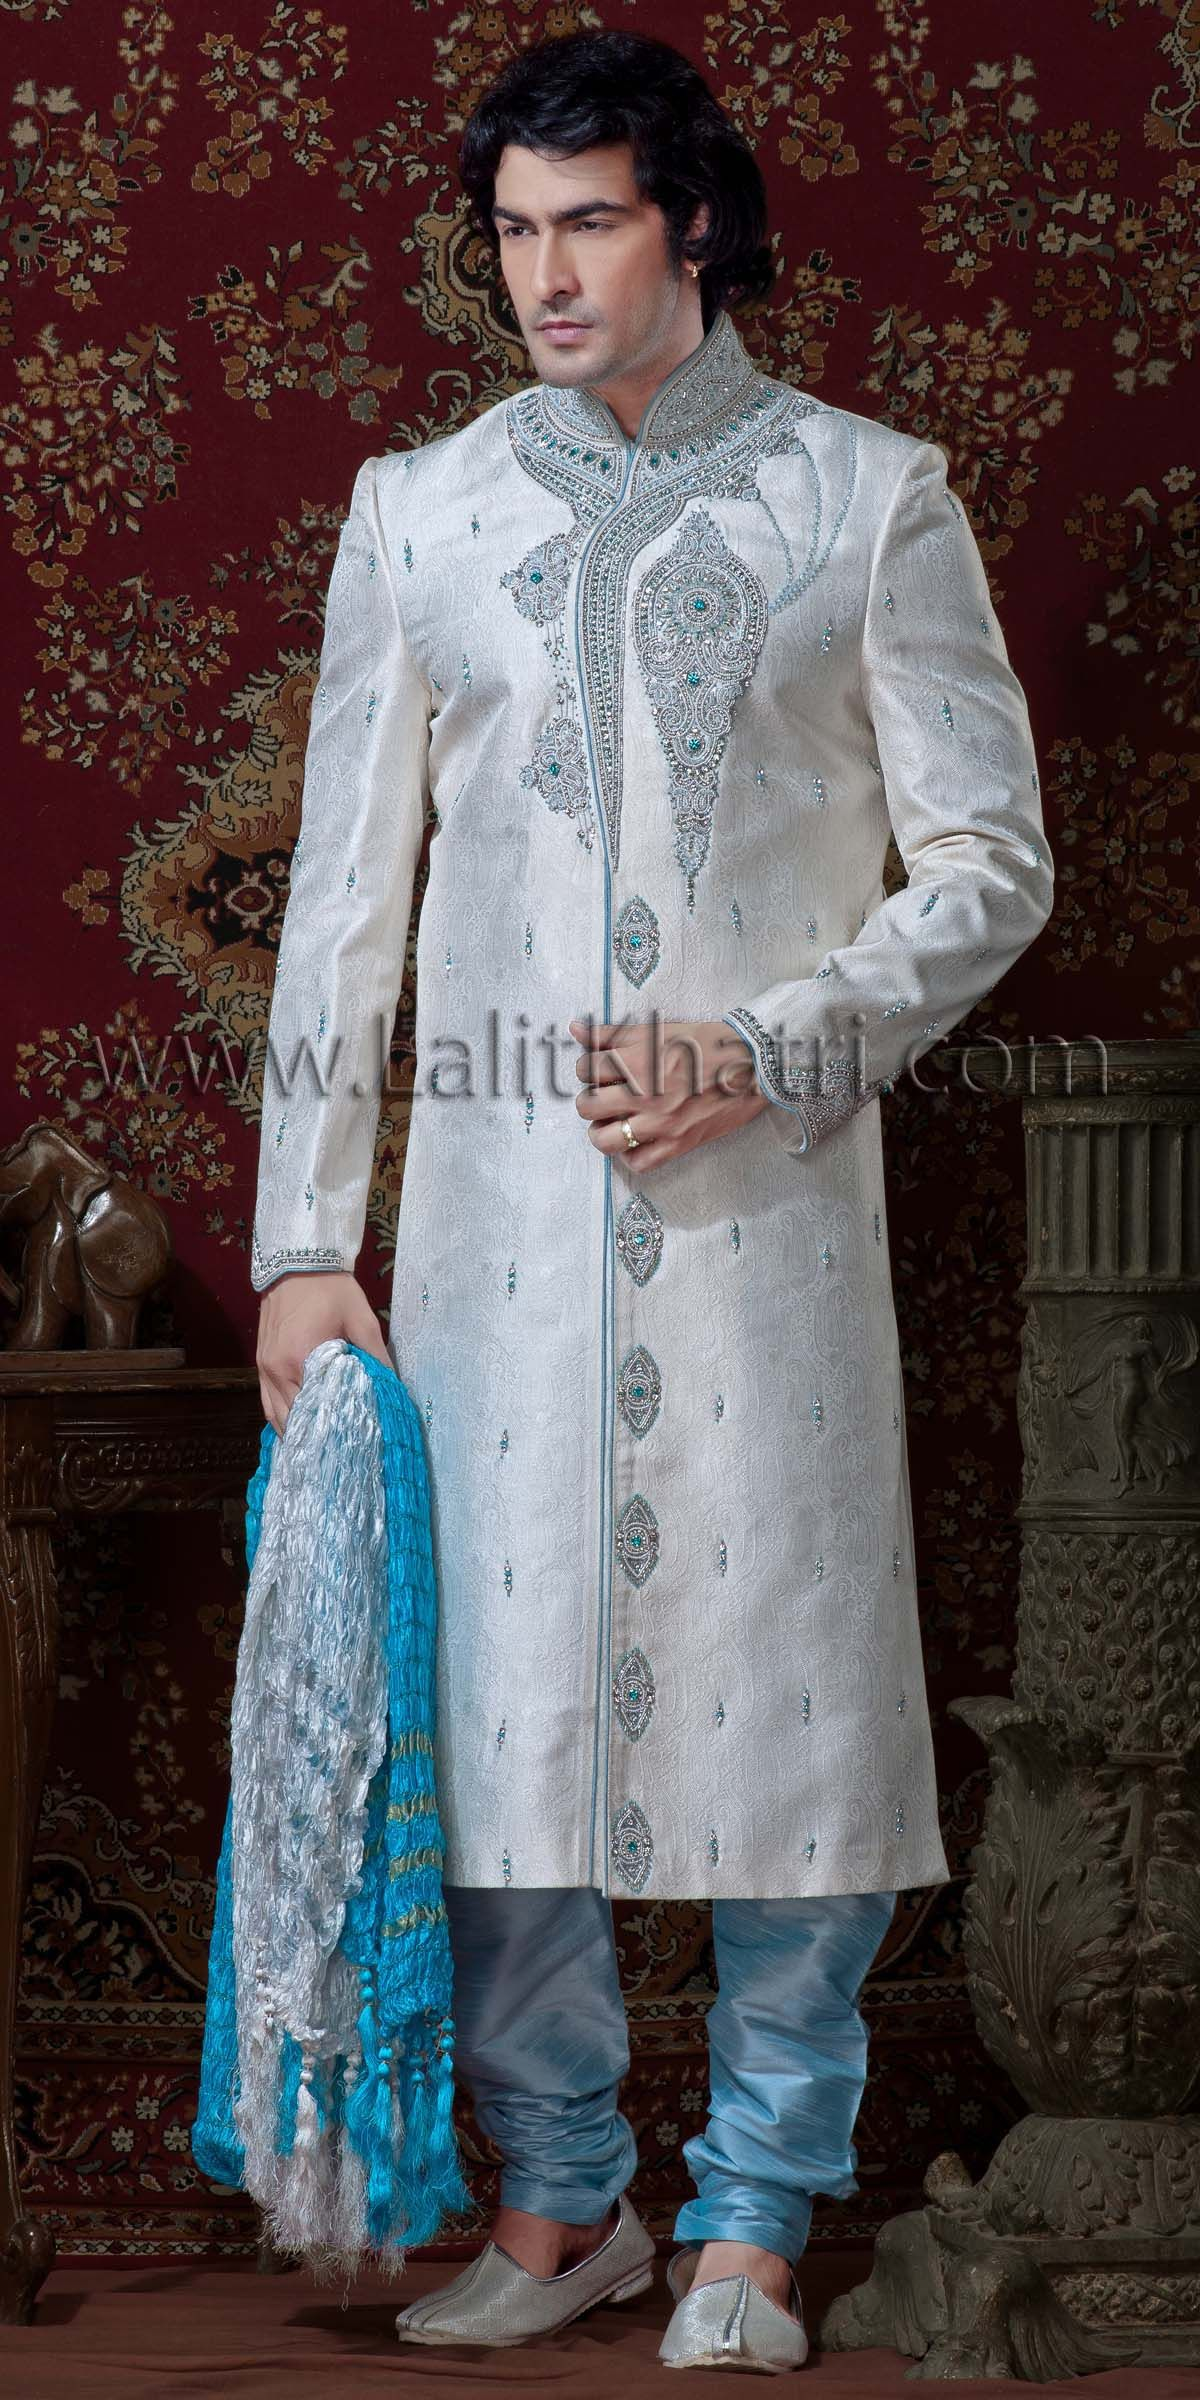 white sherwani | Exquisite Off White Sherwani, Off White & Sky Blue ...